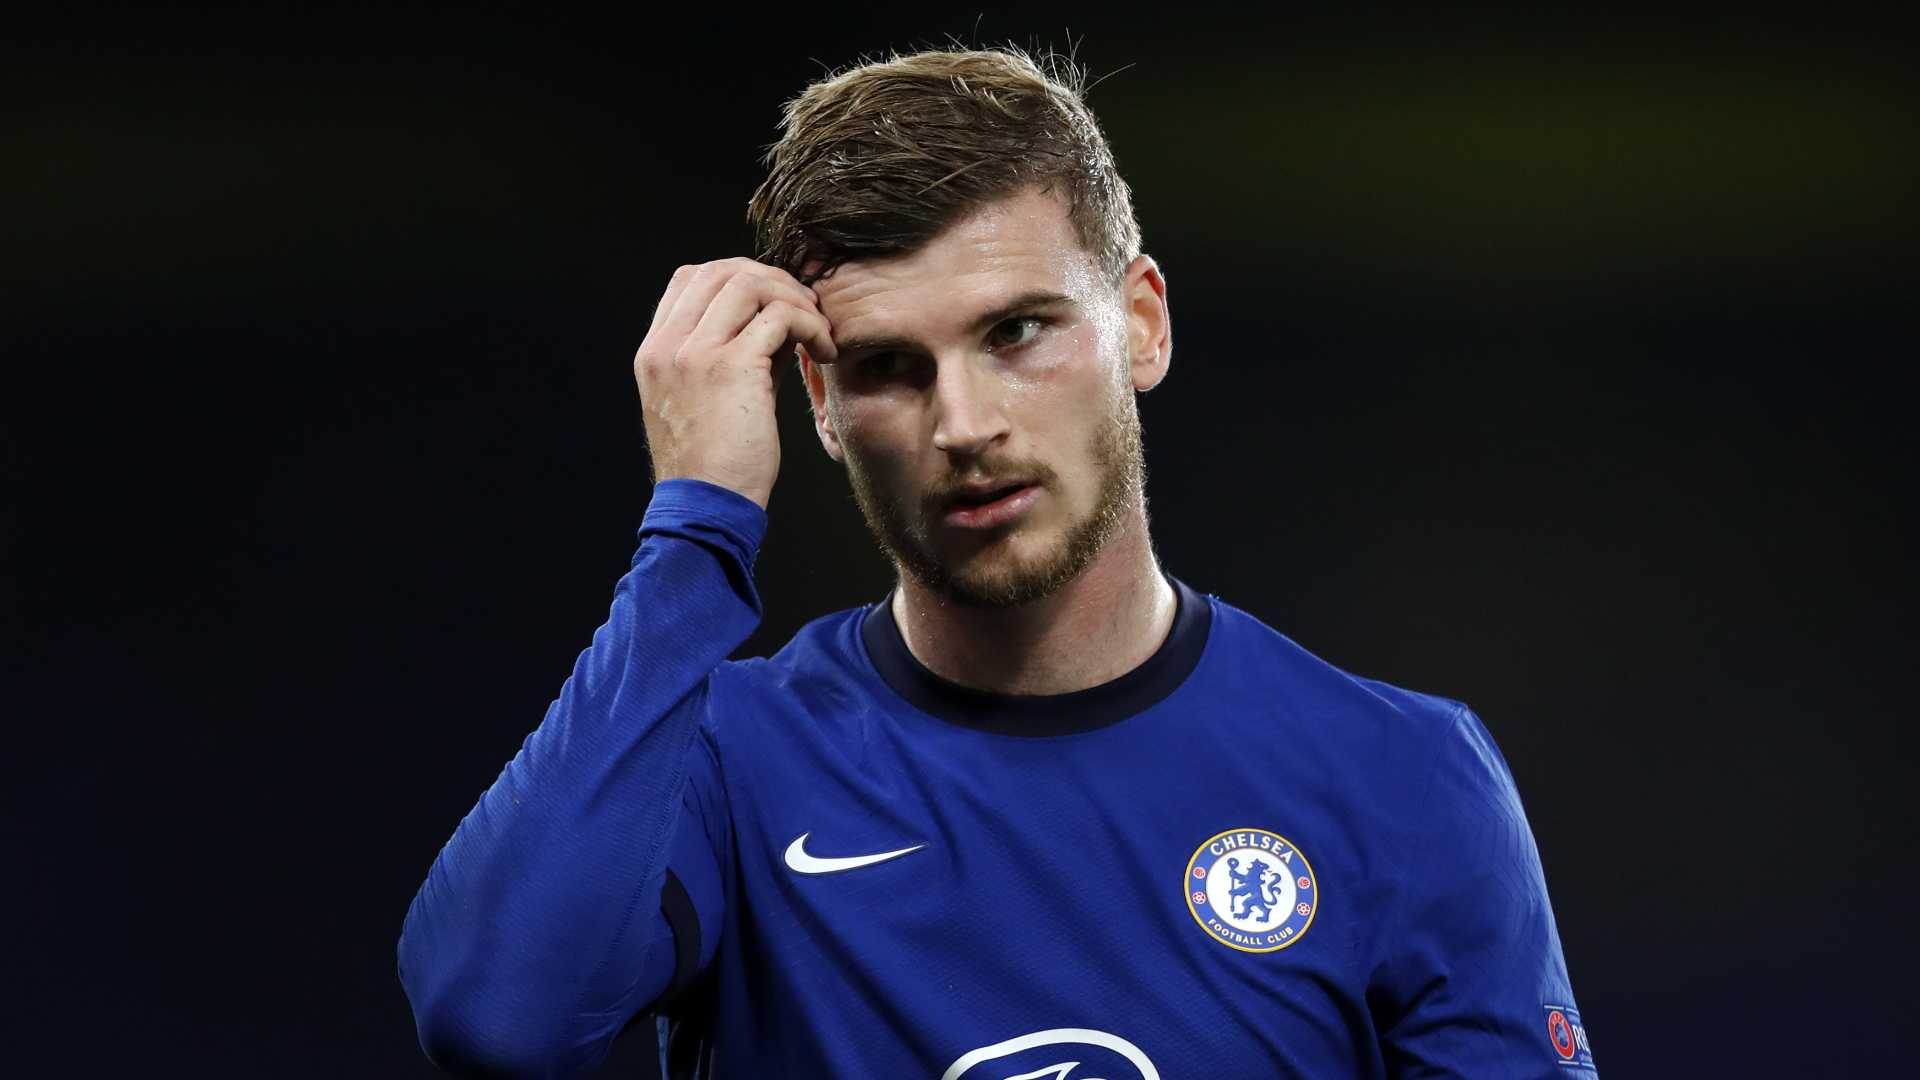 'Werner can play on the left, he just needs time' - Lampard calls for patience amid Chelsea striker's struggles for form